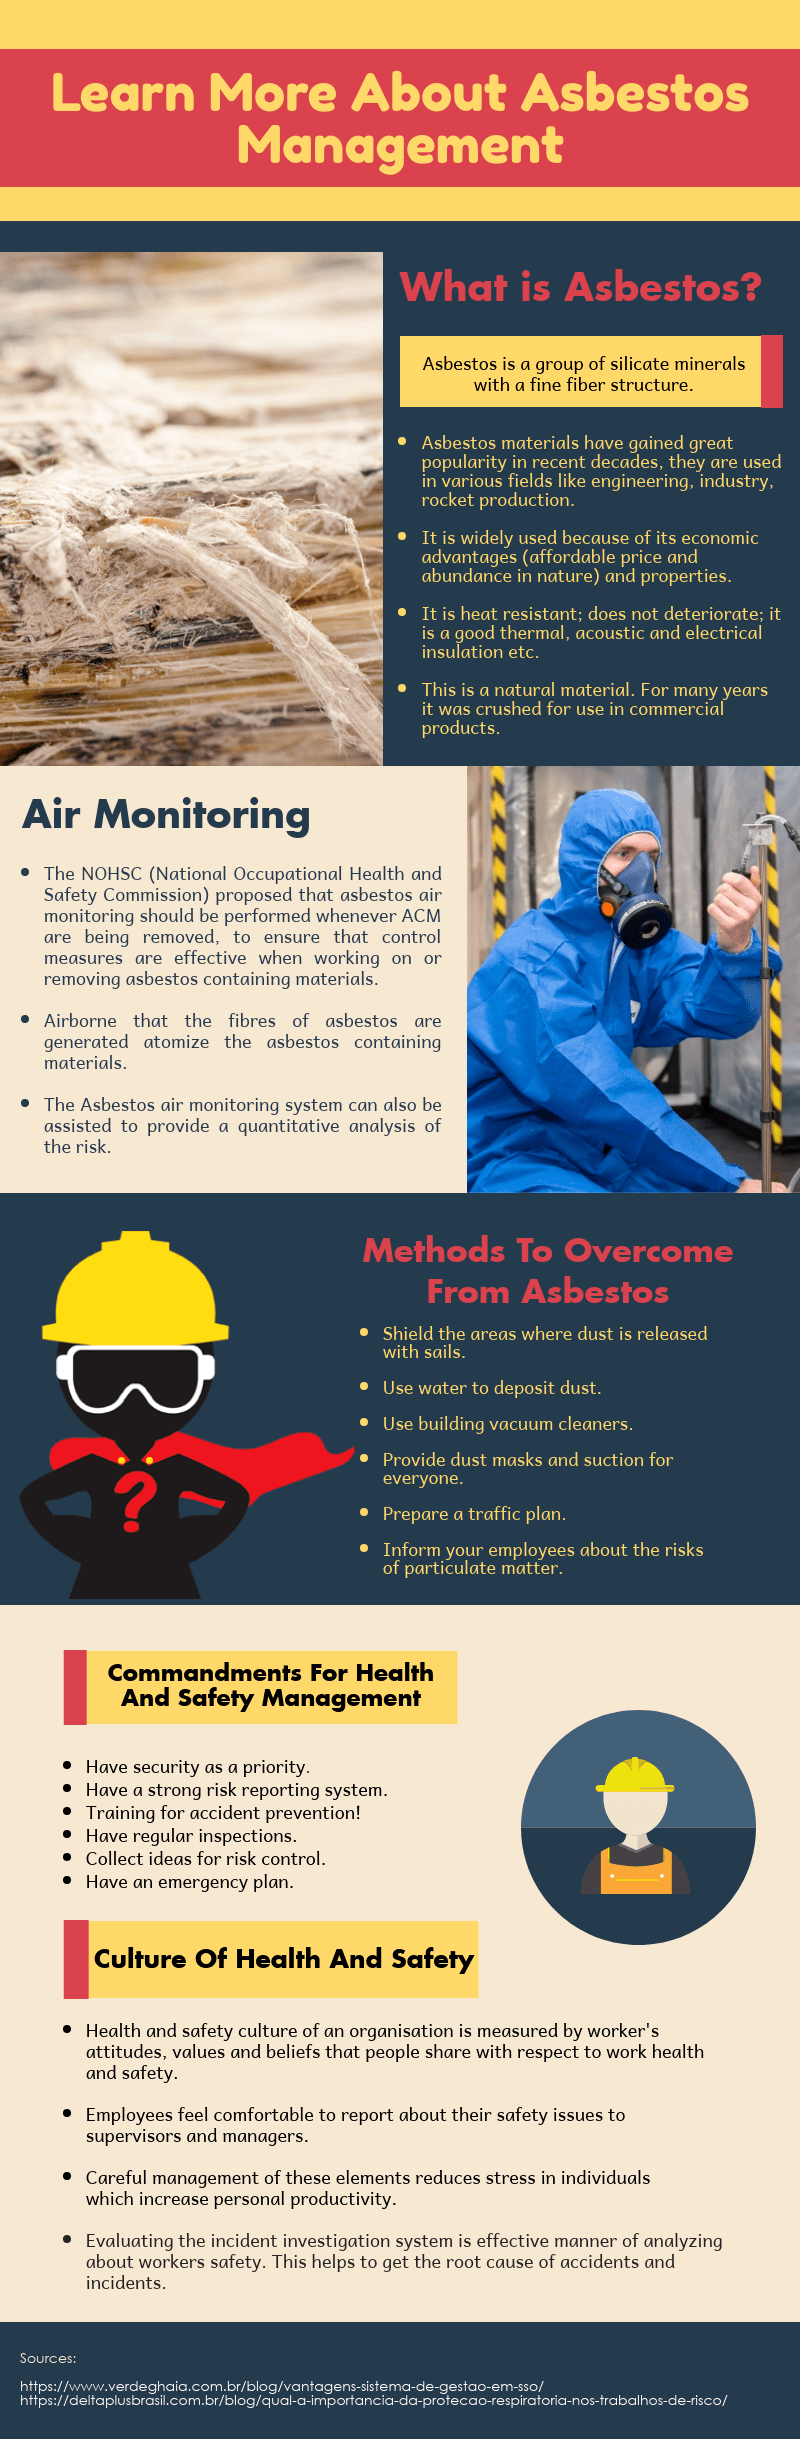 A Primer on Asbestos And Asbestos Remediation | Sustainably Yours